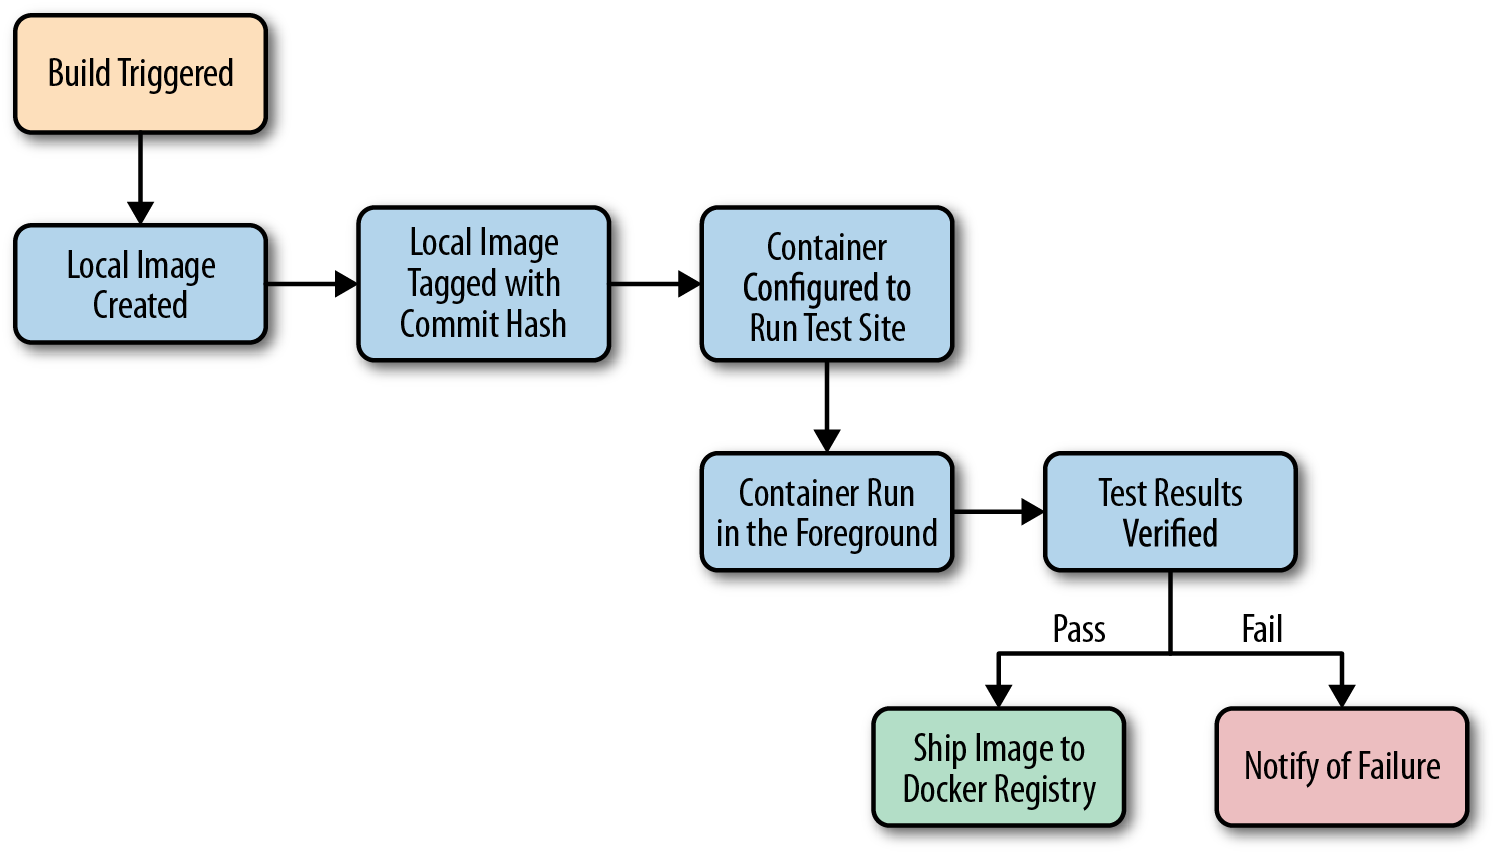 A typical workflow when testing with Docker